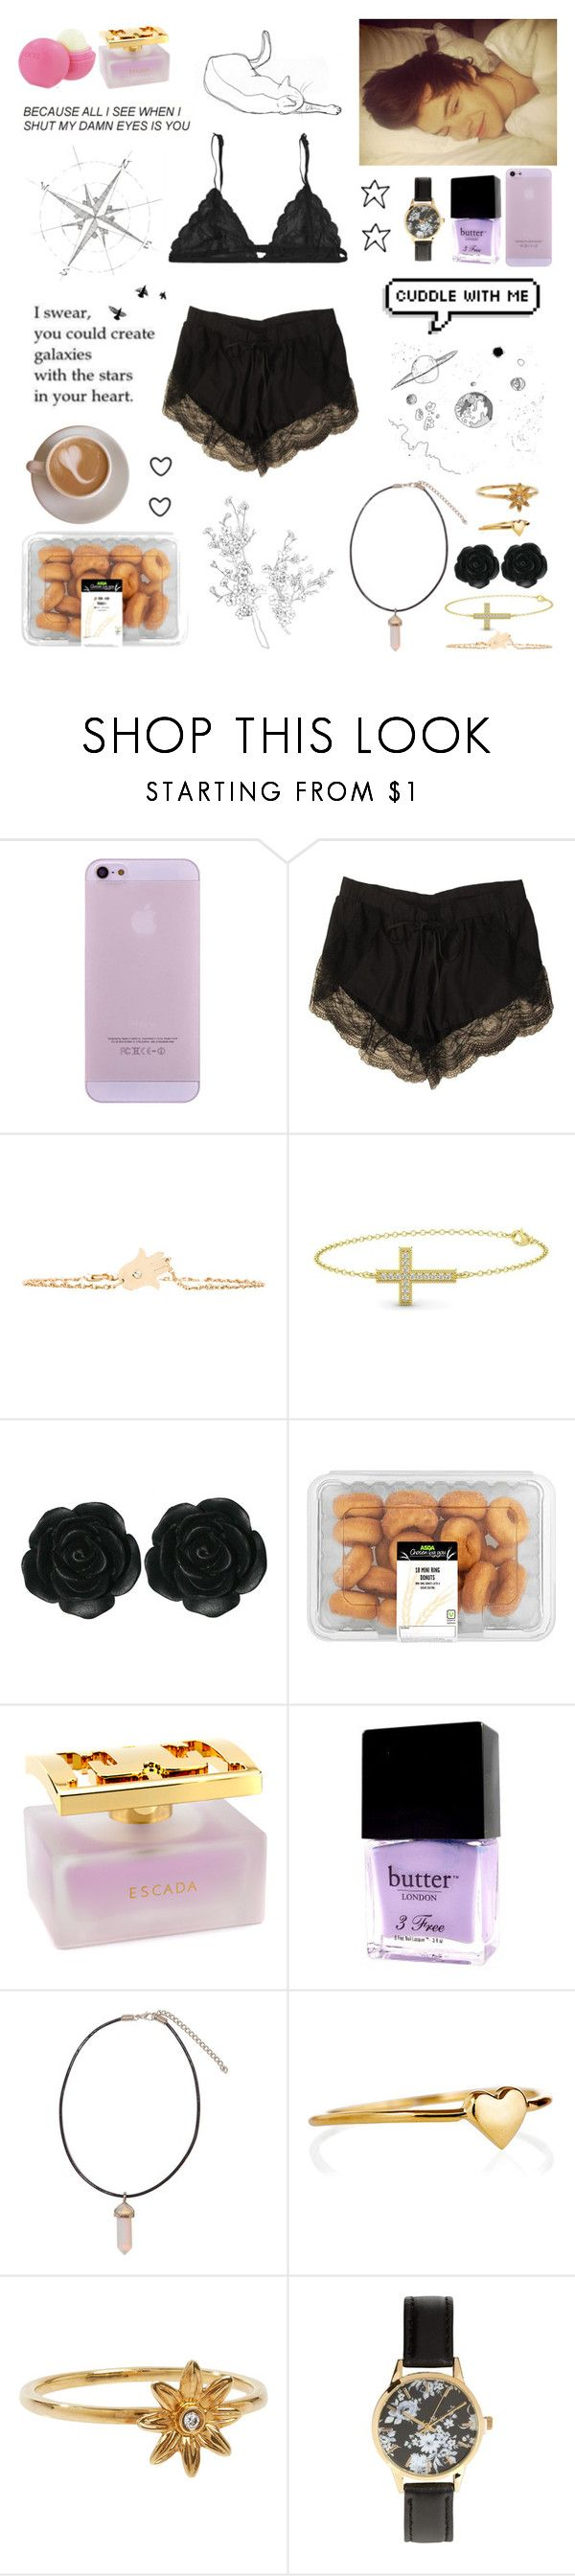 """""""because all i see when i shut my eyes is you"""" by lu-fonsecaa ❤ liked on Polyvore featuring Lover, Fleur of England, Jennifer Zeuner, Gemvara, Dollydagger, ESCADA, Eos, Butter London, Janna Conner and STONE"""